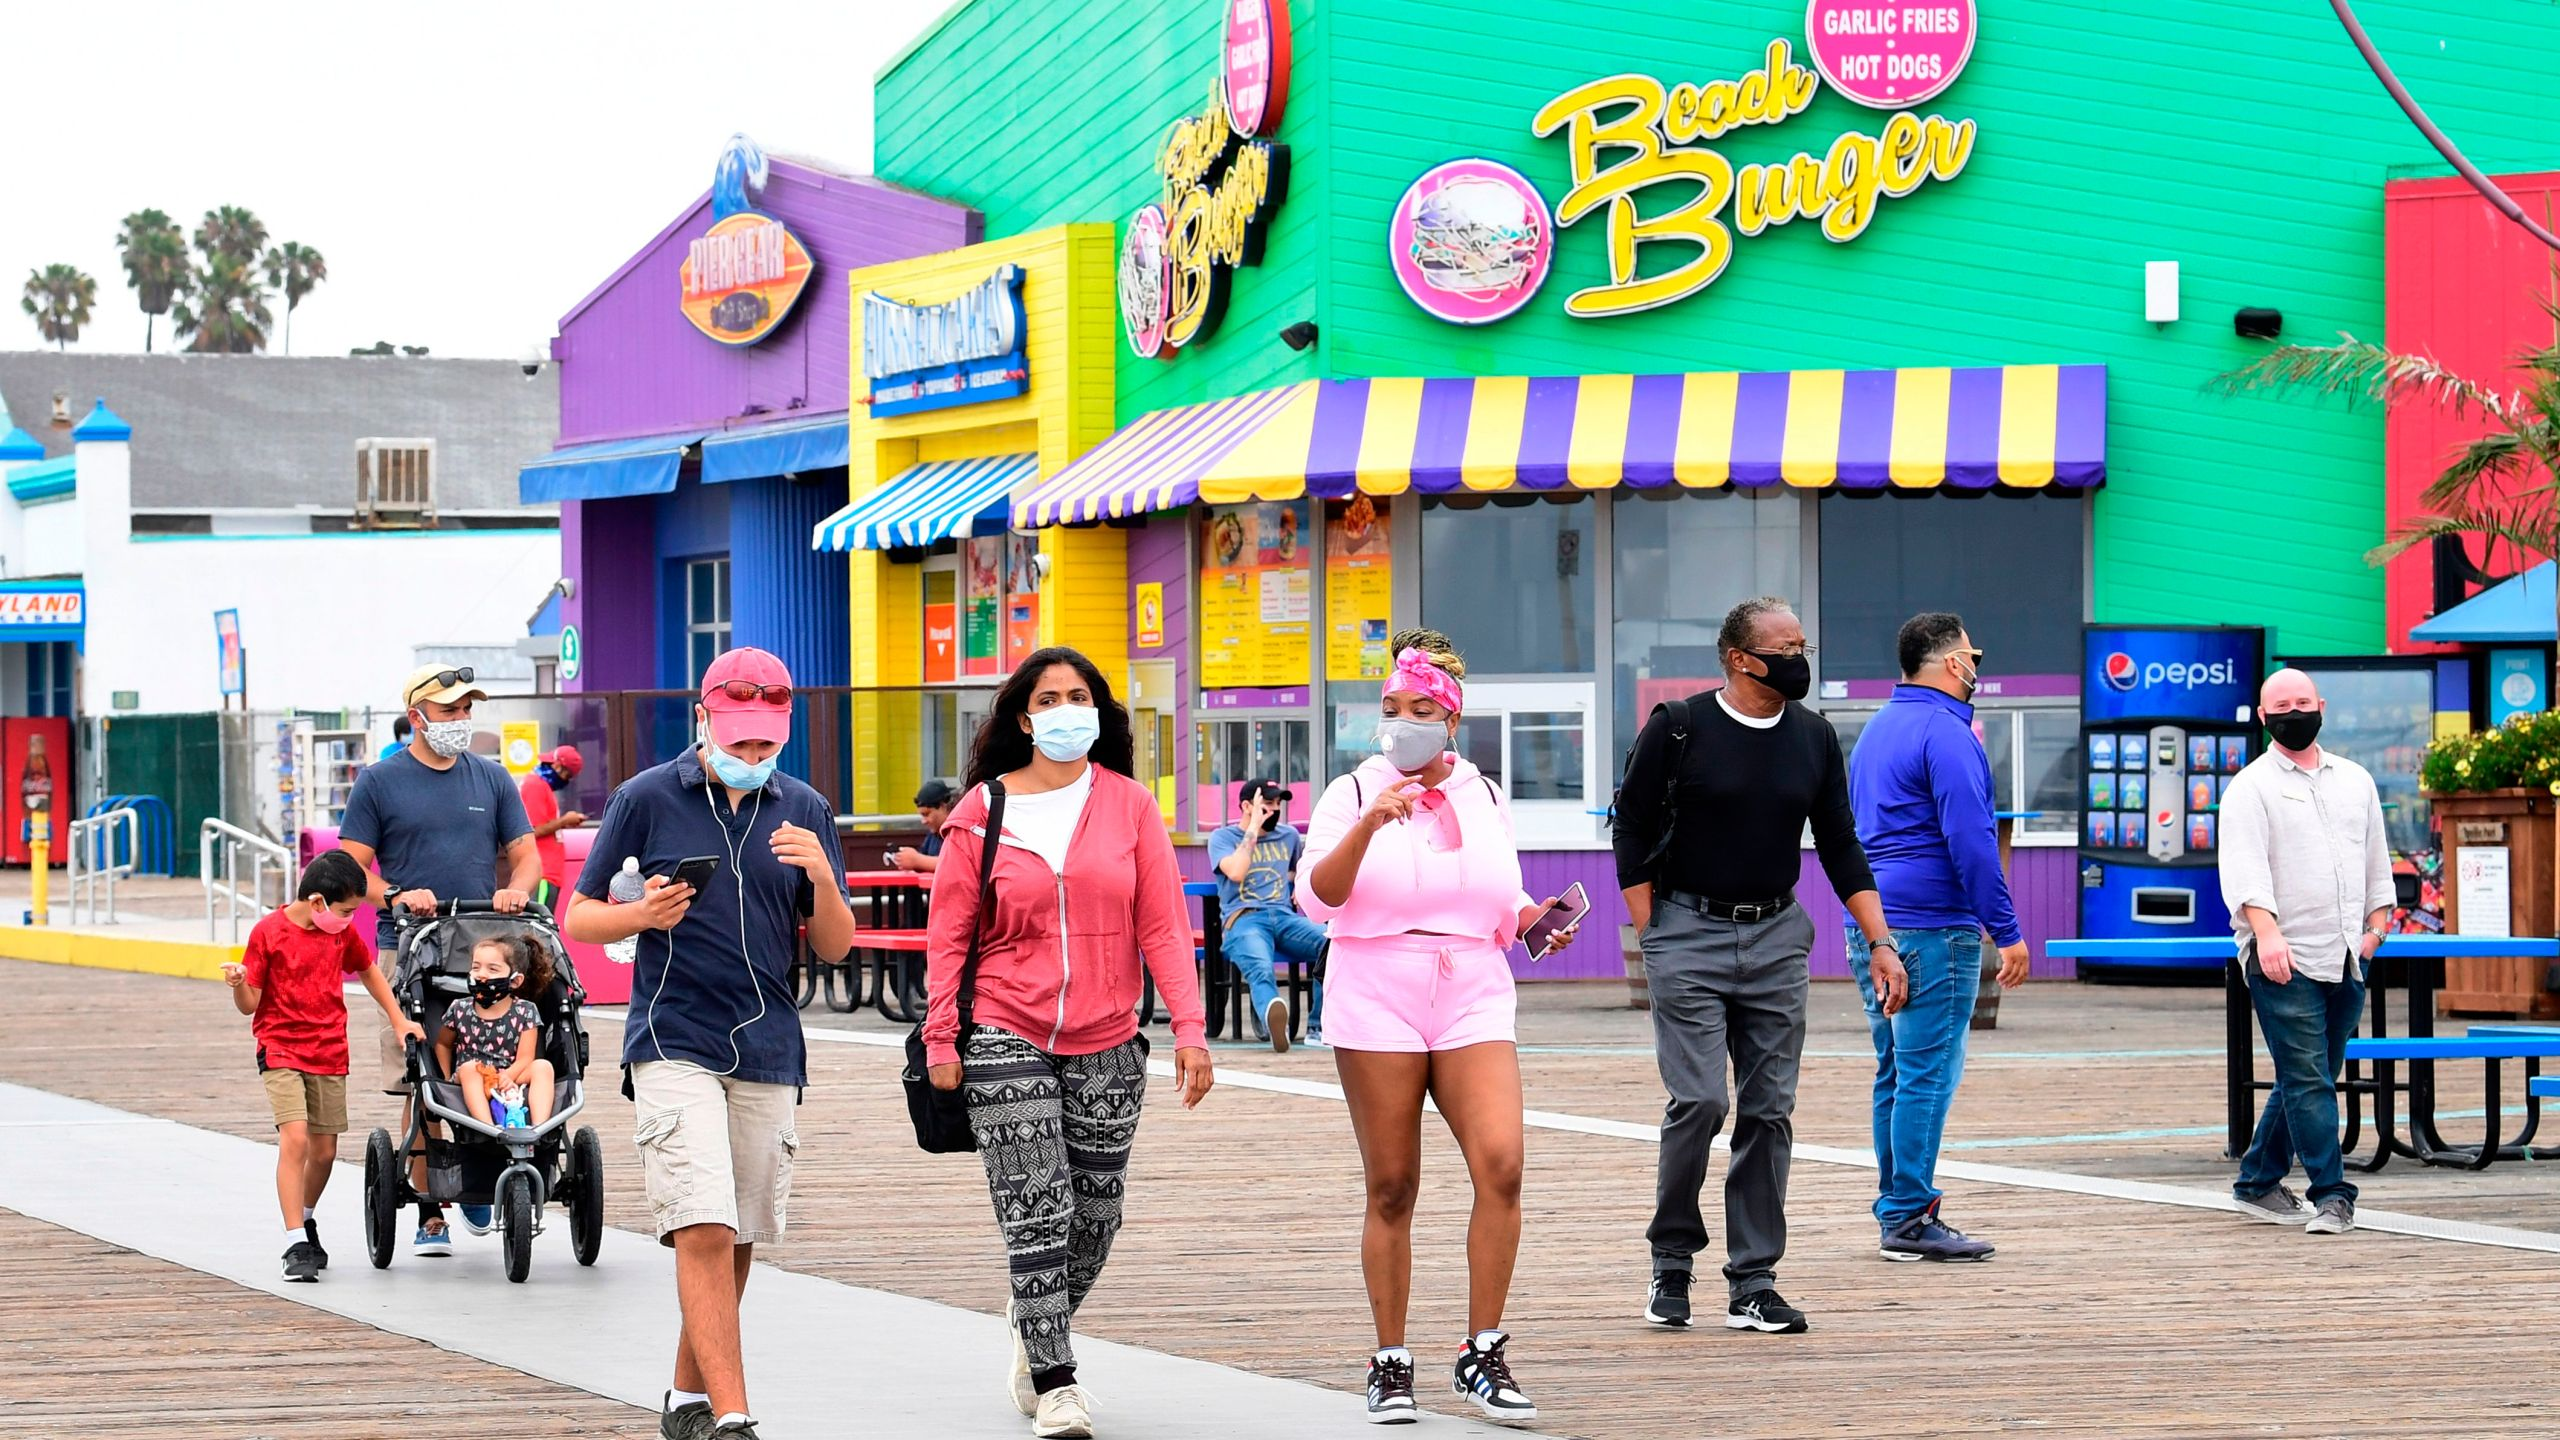 People wearing facemasks visit Santa Monica Pier which reopened on June 25 after closure for over three months due to the coronavirus pandemic, on June 26, 2020.(FREDERIC J. BROWN/AFP via Getty Images)